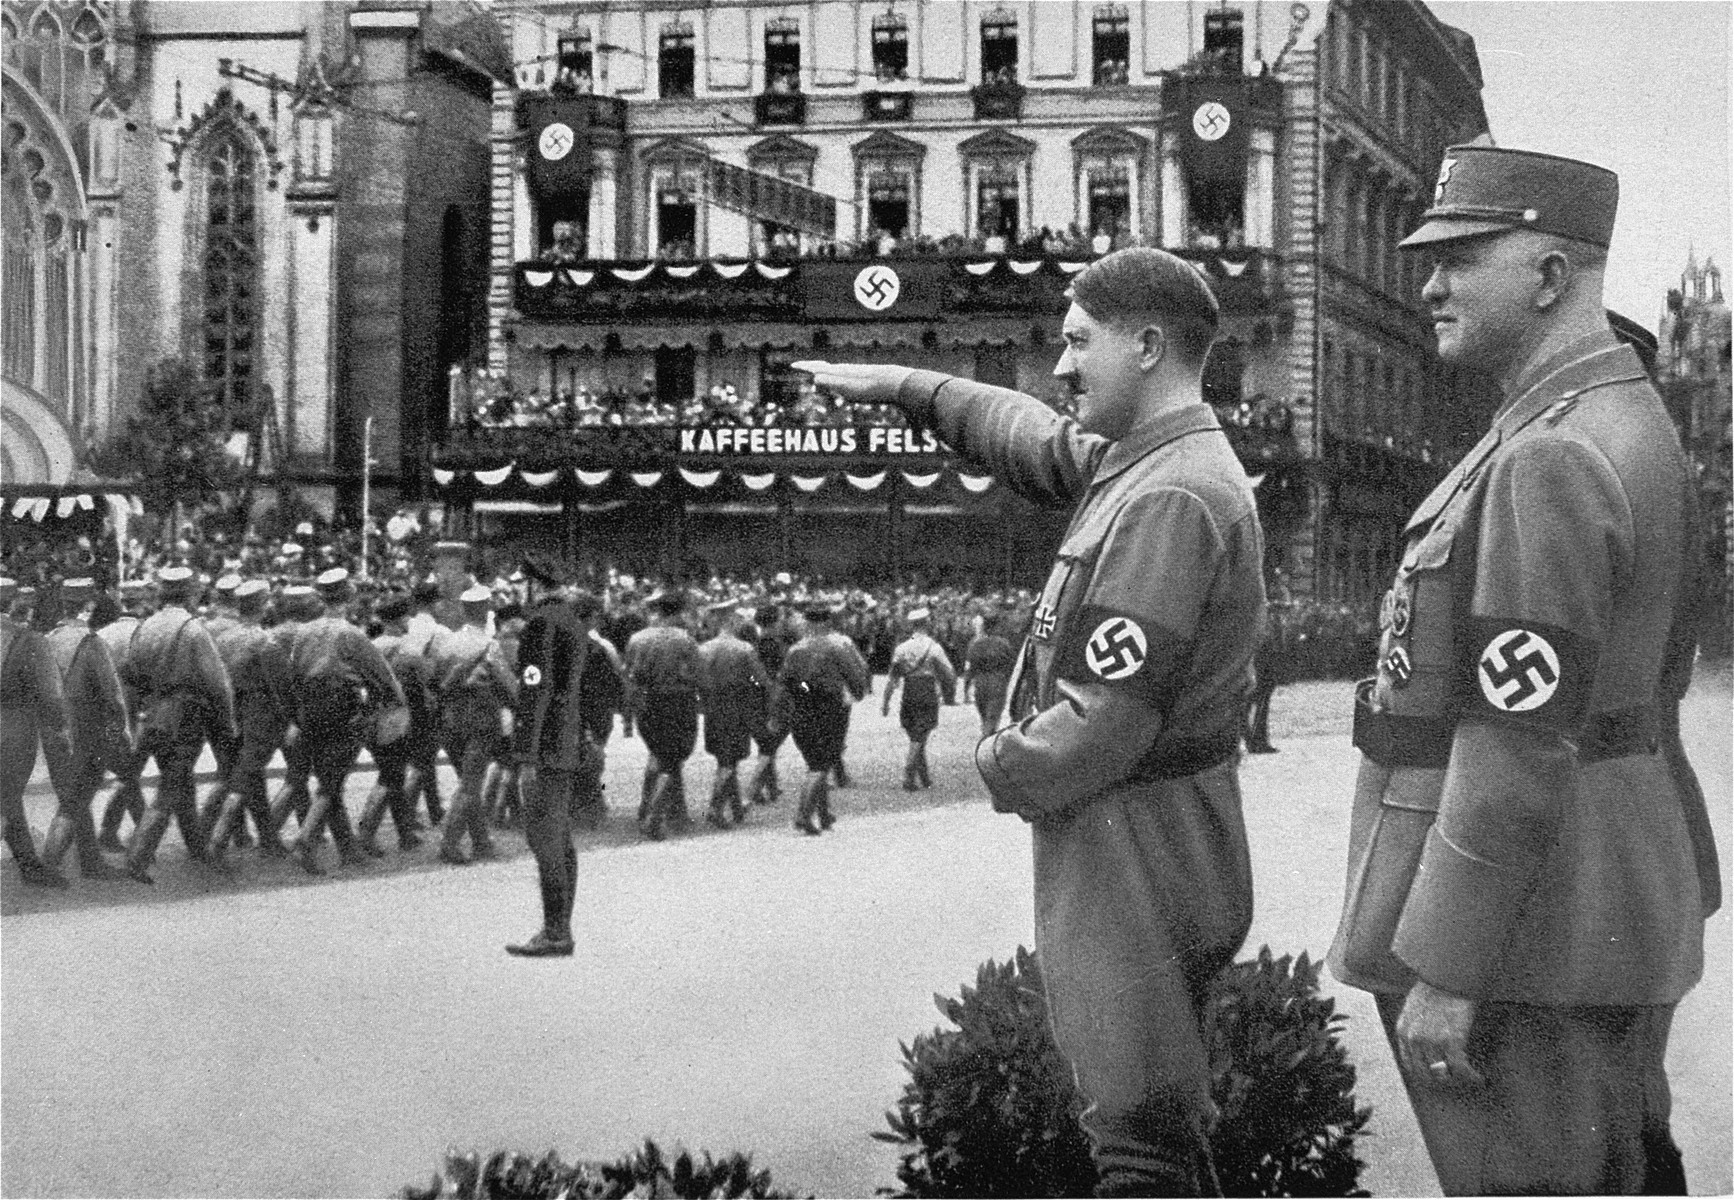 Adolf Hitler salutes passing SA troops while their commander, SA Reichstatthalter of Saxony, Mutschmann, looks on.